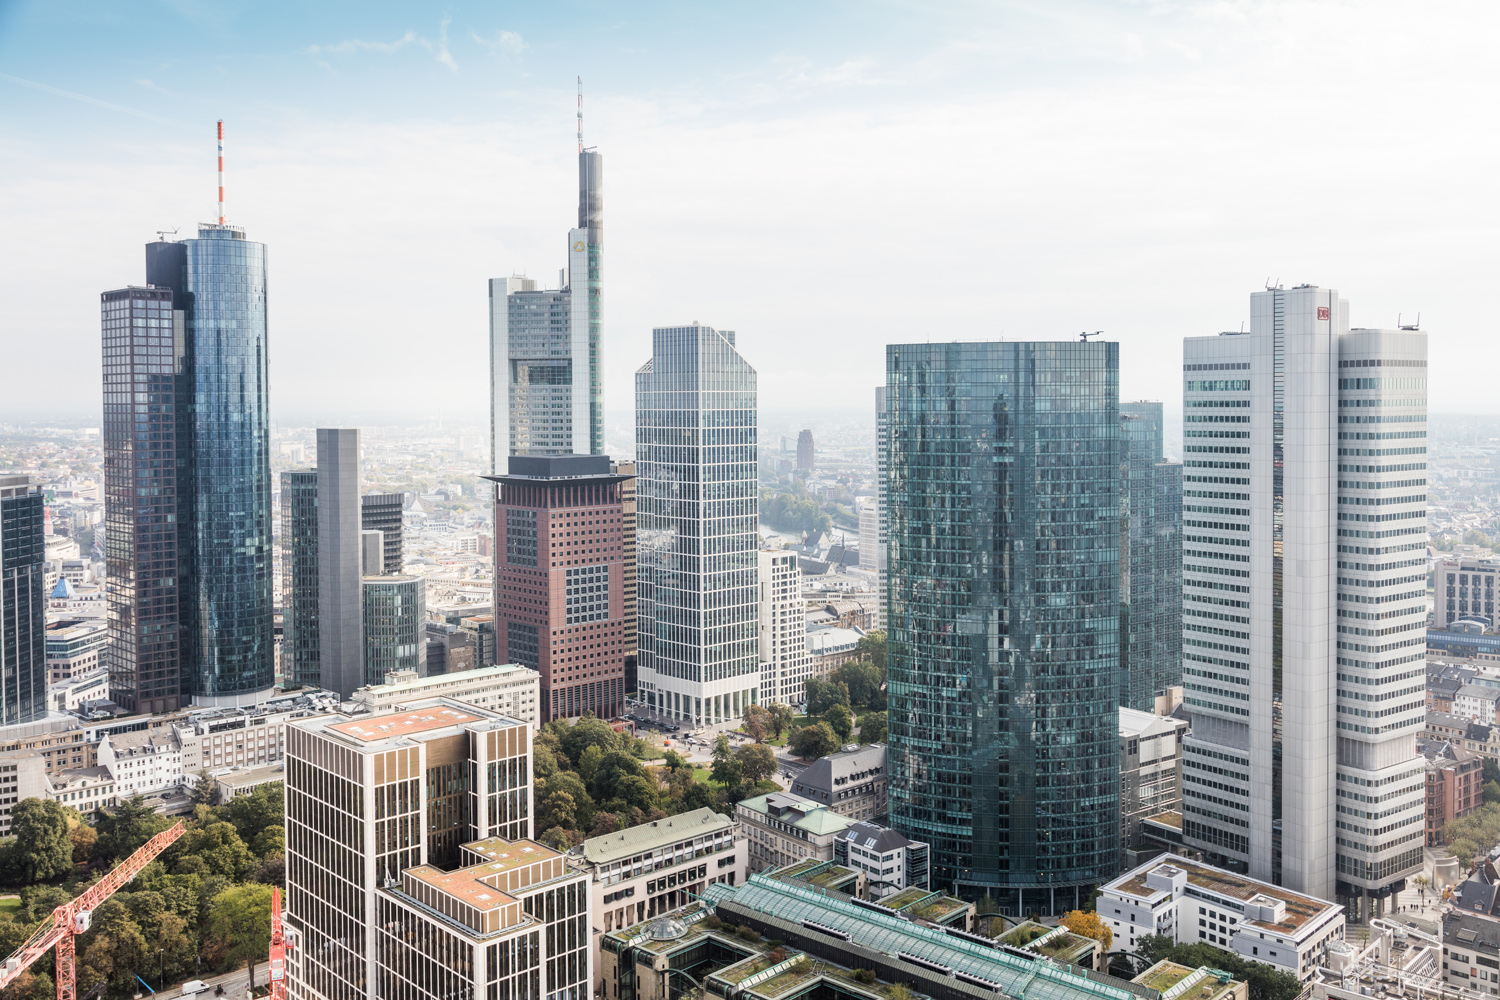 frankfurt-am-main-22